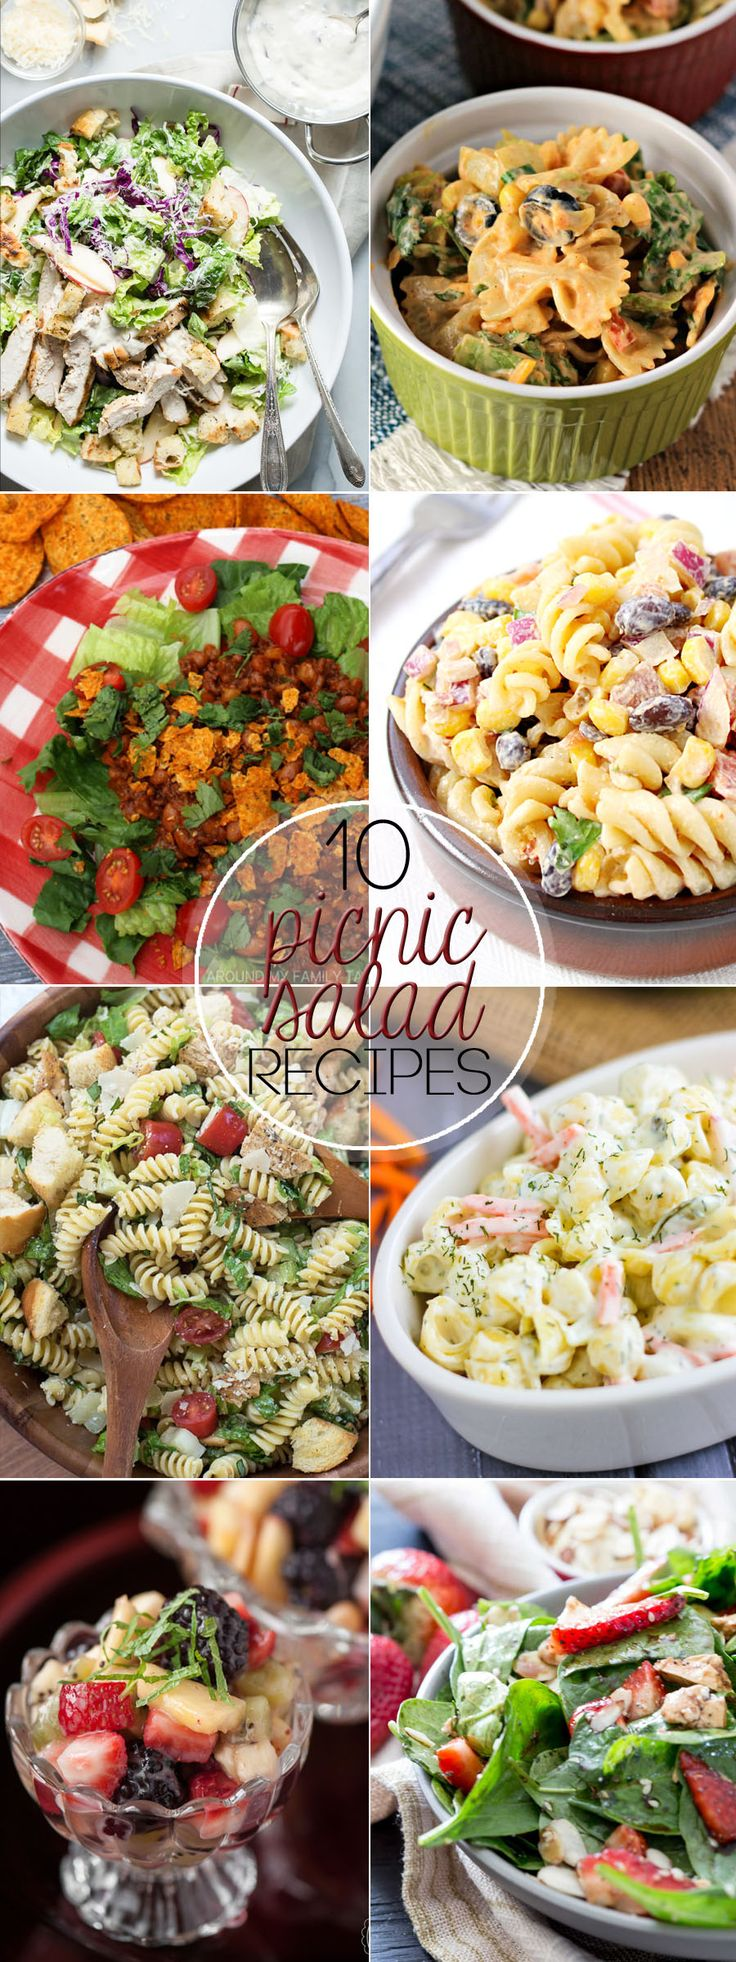 Here are 10 Picnic Salad Recipes you need for the season. Work your way through them all! Everyone will be wanting the recipes.